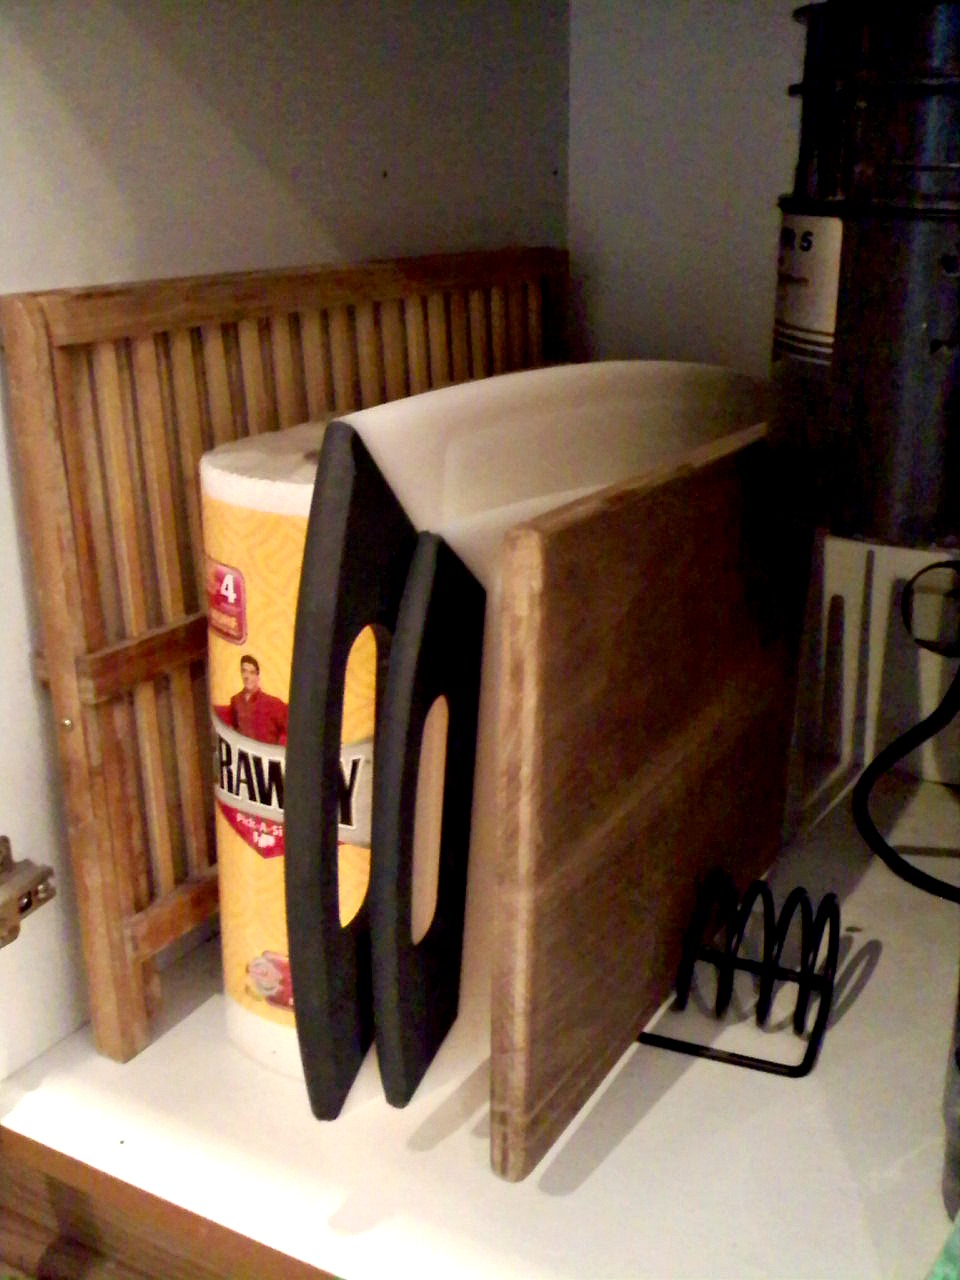 New uses for old things mail organizer as cutting board divider - New uses for old things ...